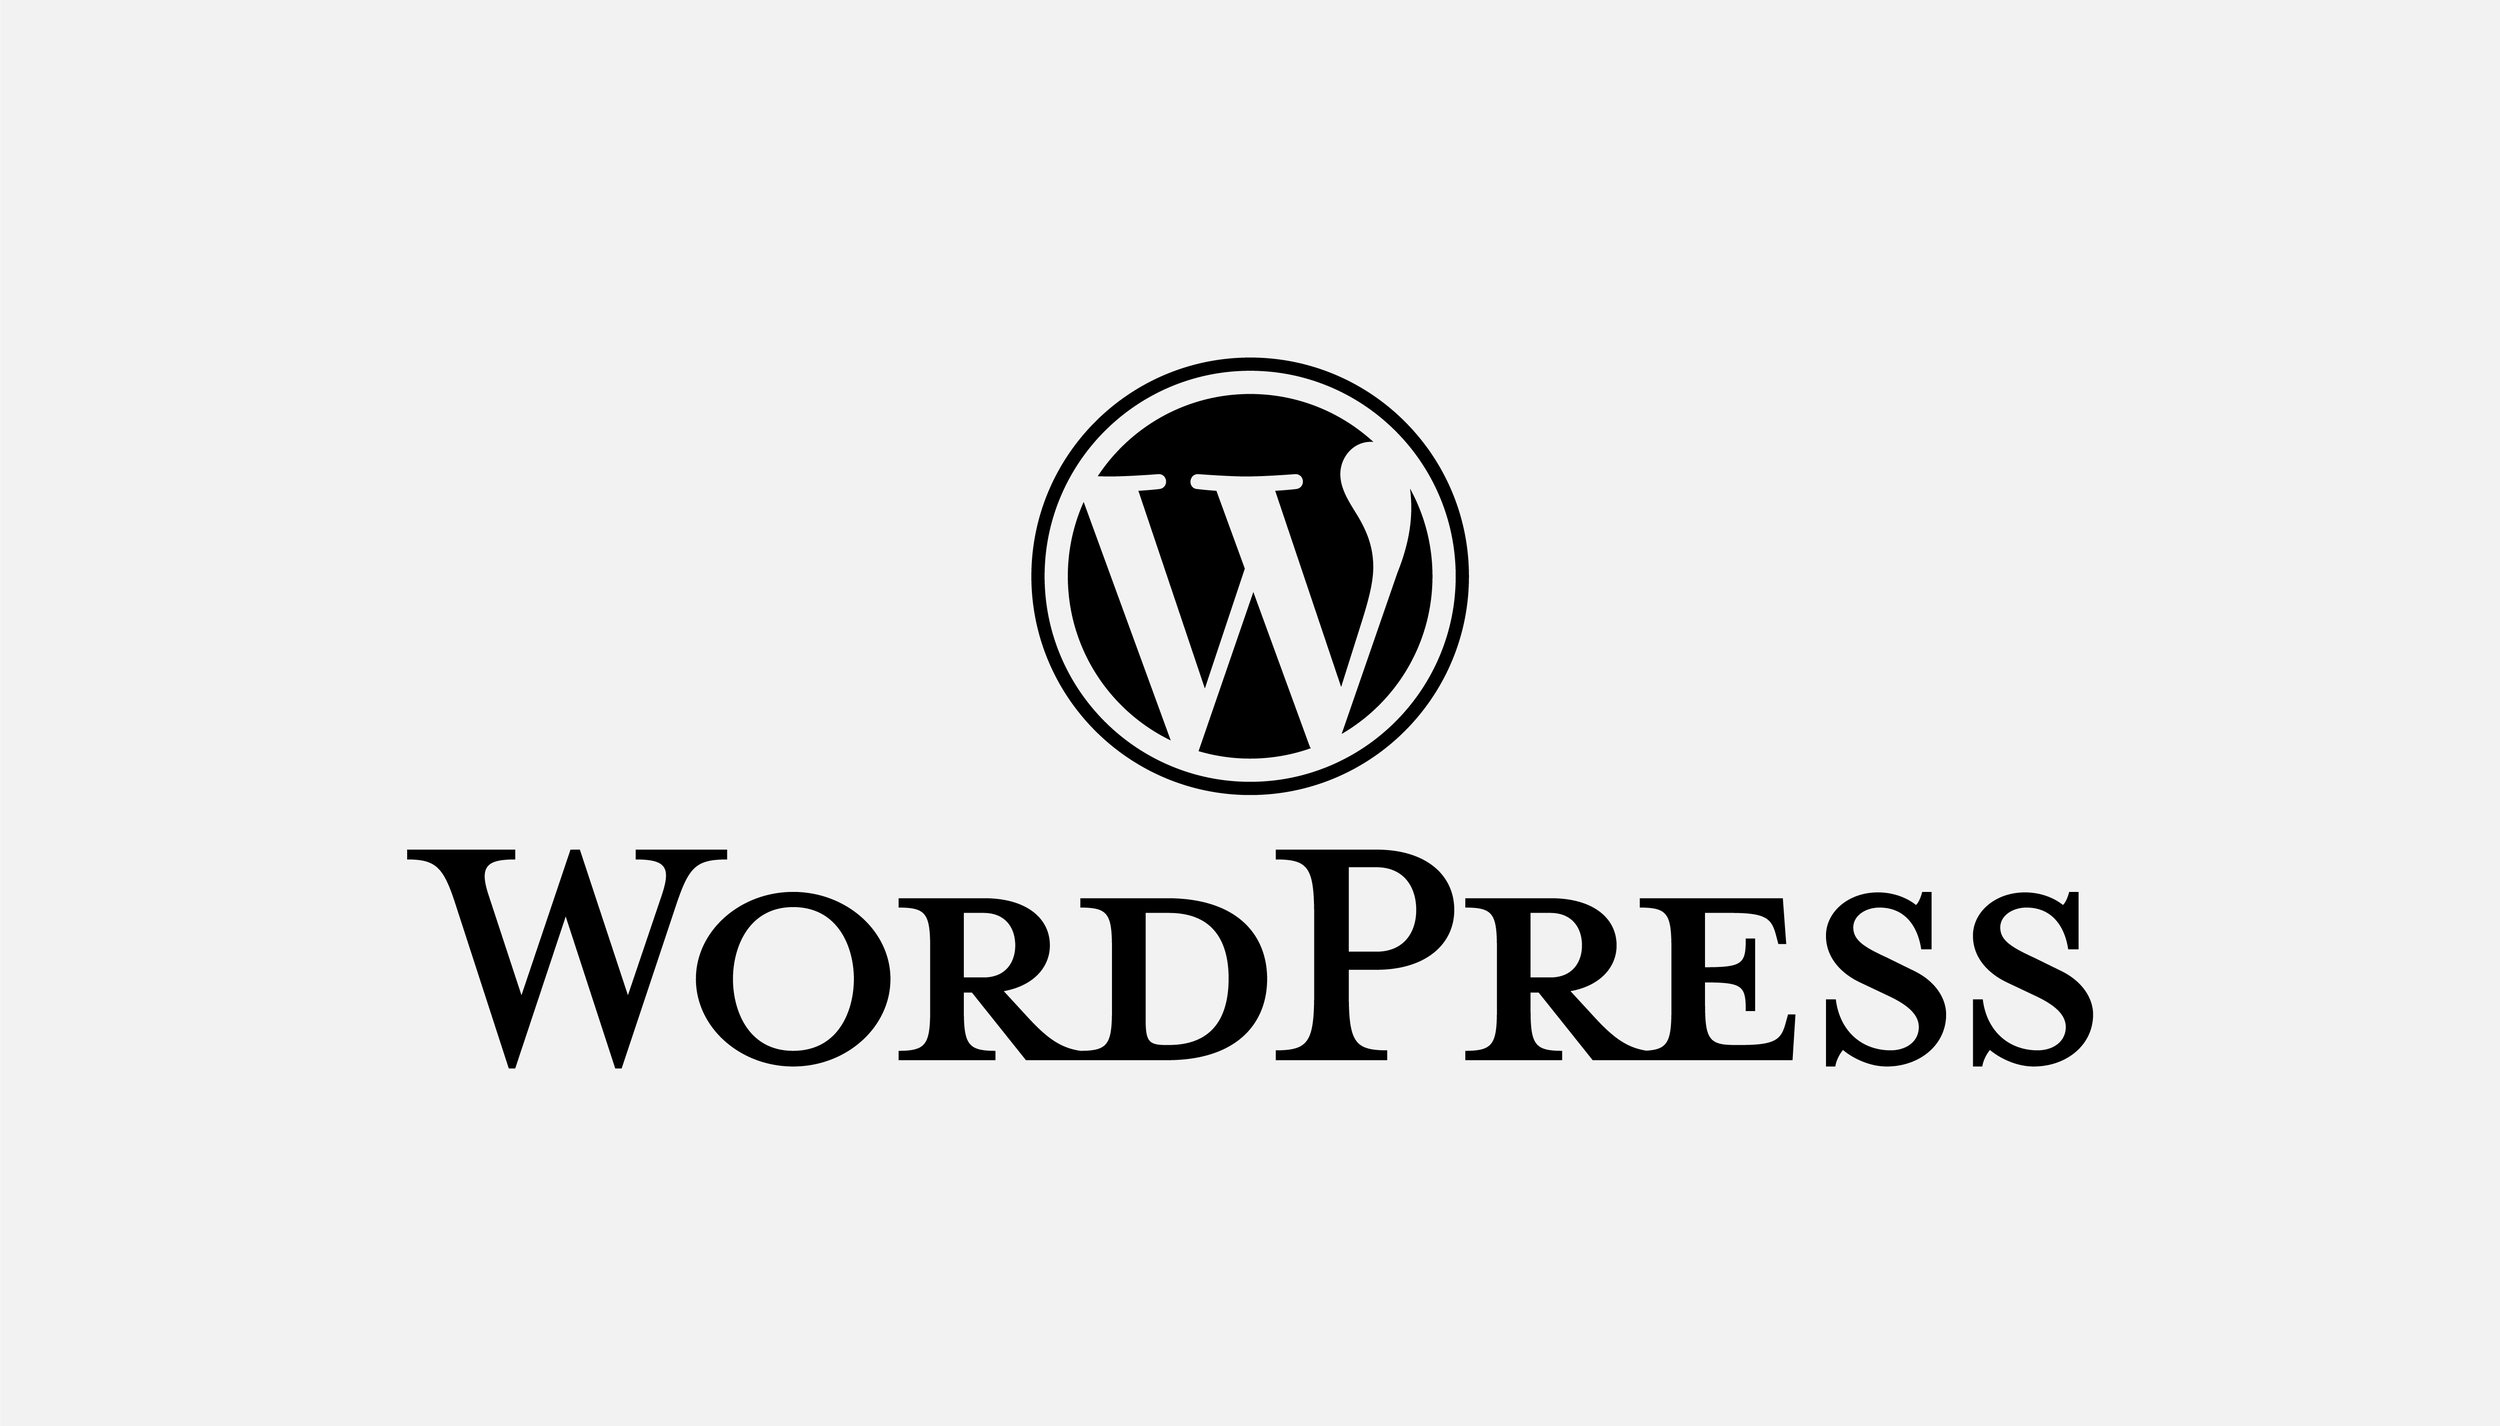 WordPress - We can design and develop websites on WordPress, whether thats making changes to an existing site, working with a theme or developing fully bespoke from scratch, we can help.